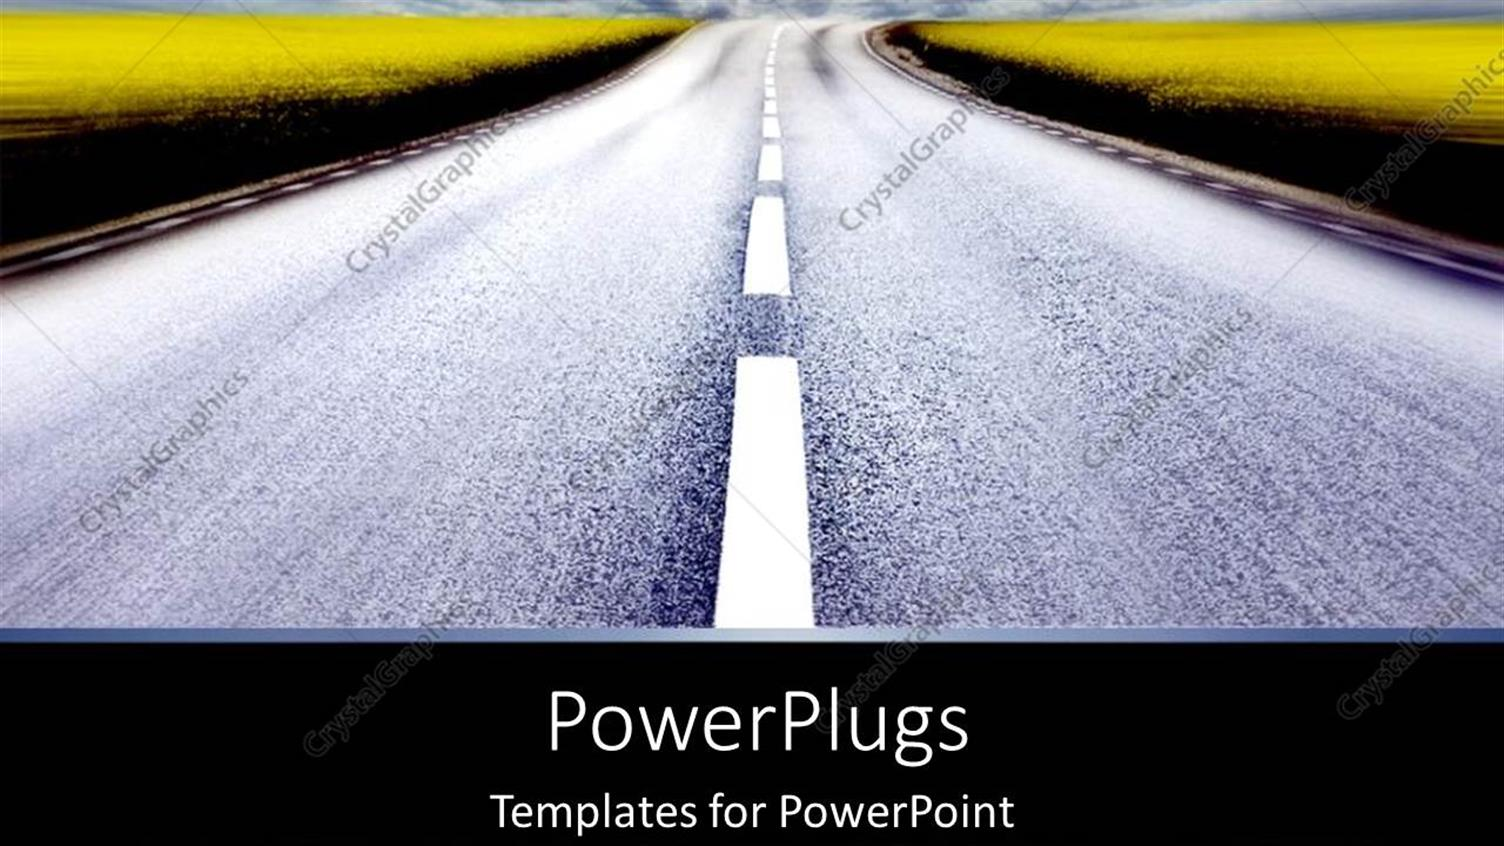 PowerPoint Template Displaying Long Road Driving to Destination as a Metaphor Journey Trip on Black Background